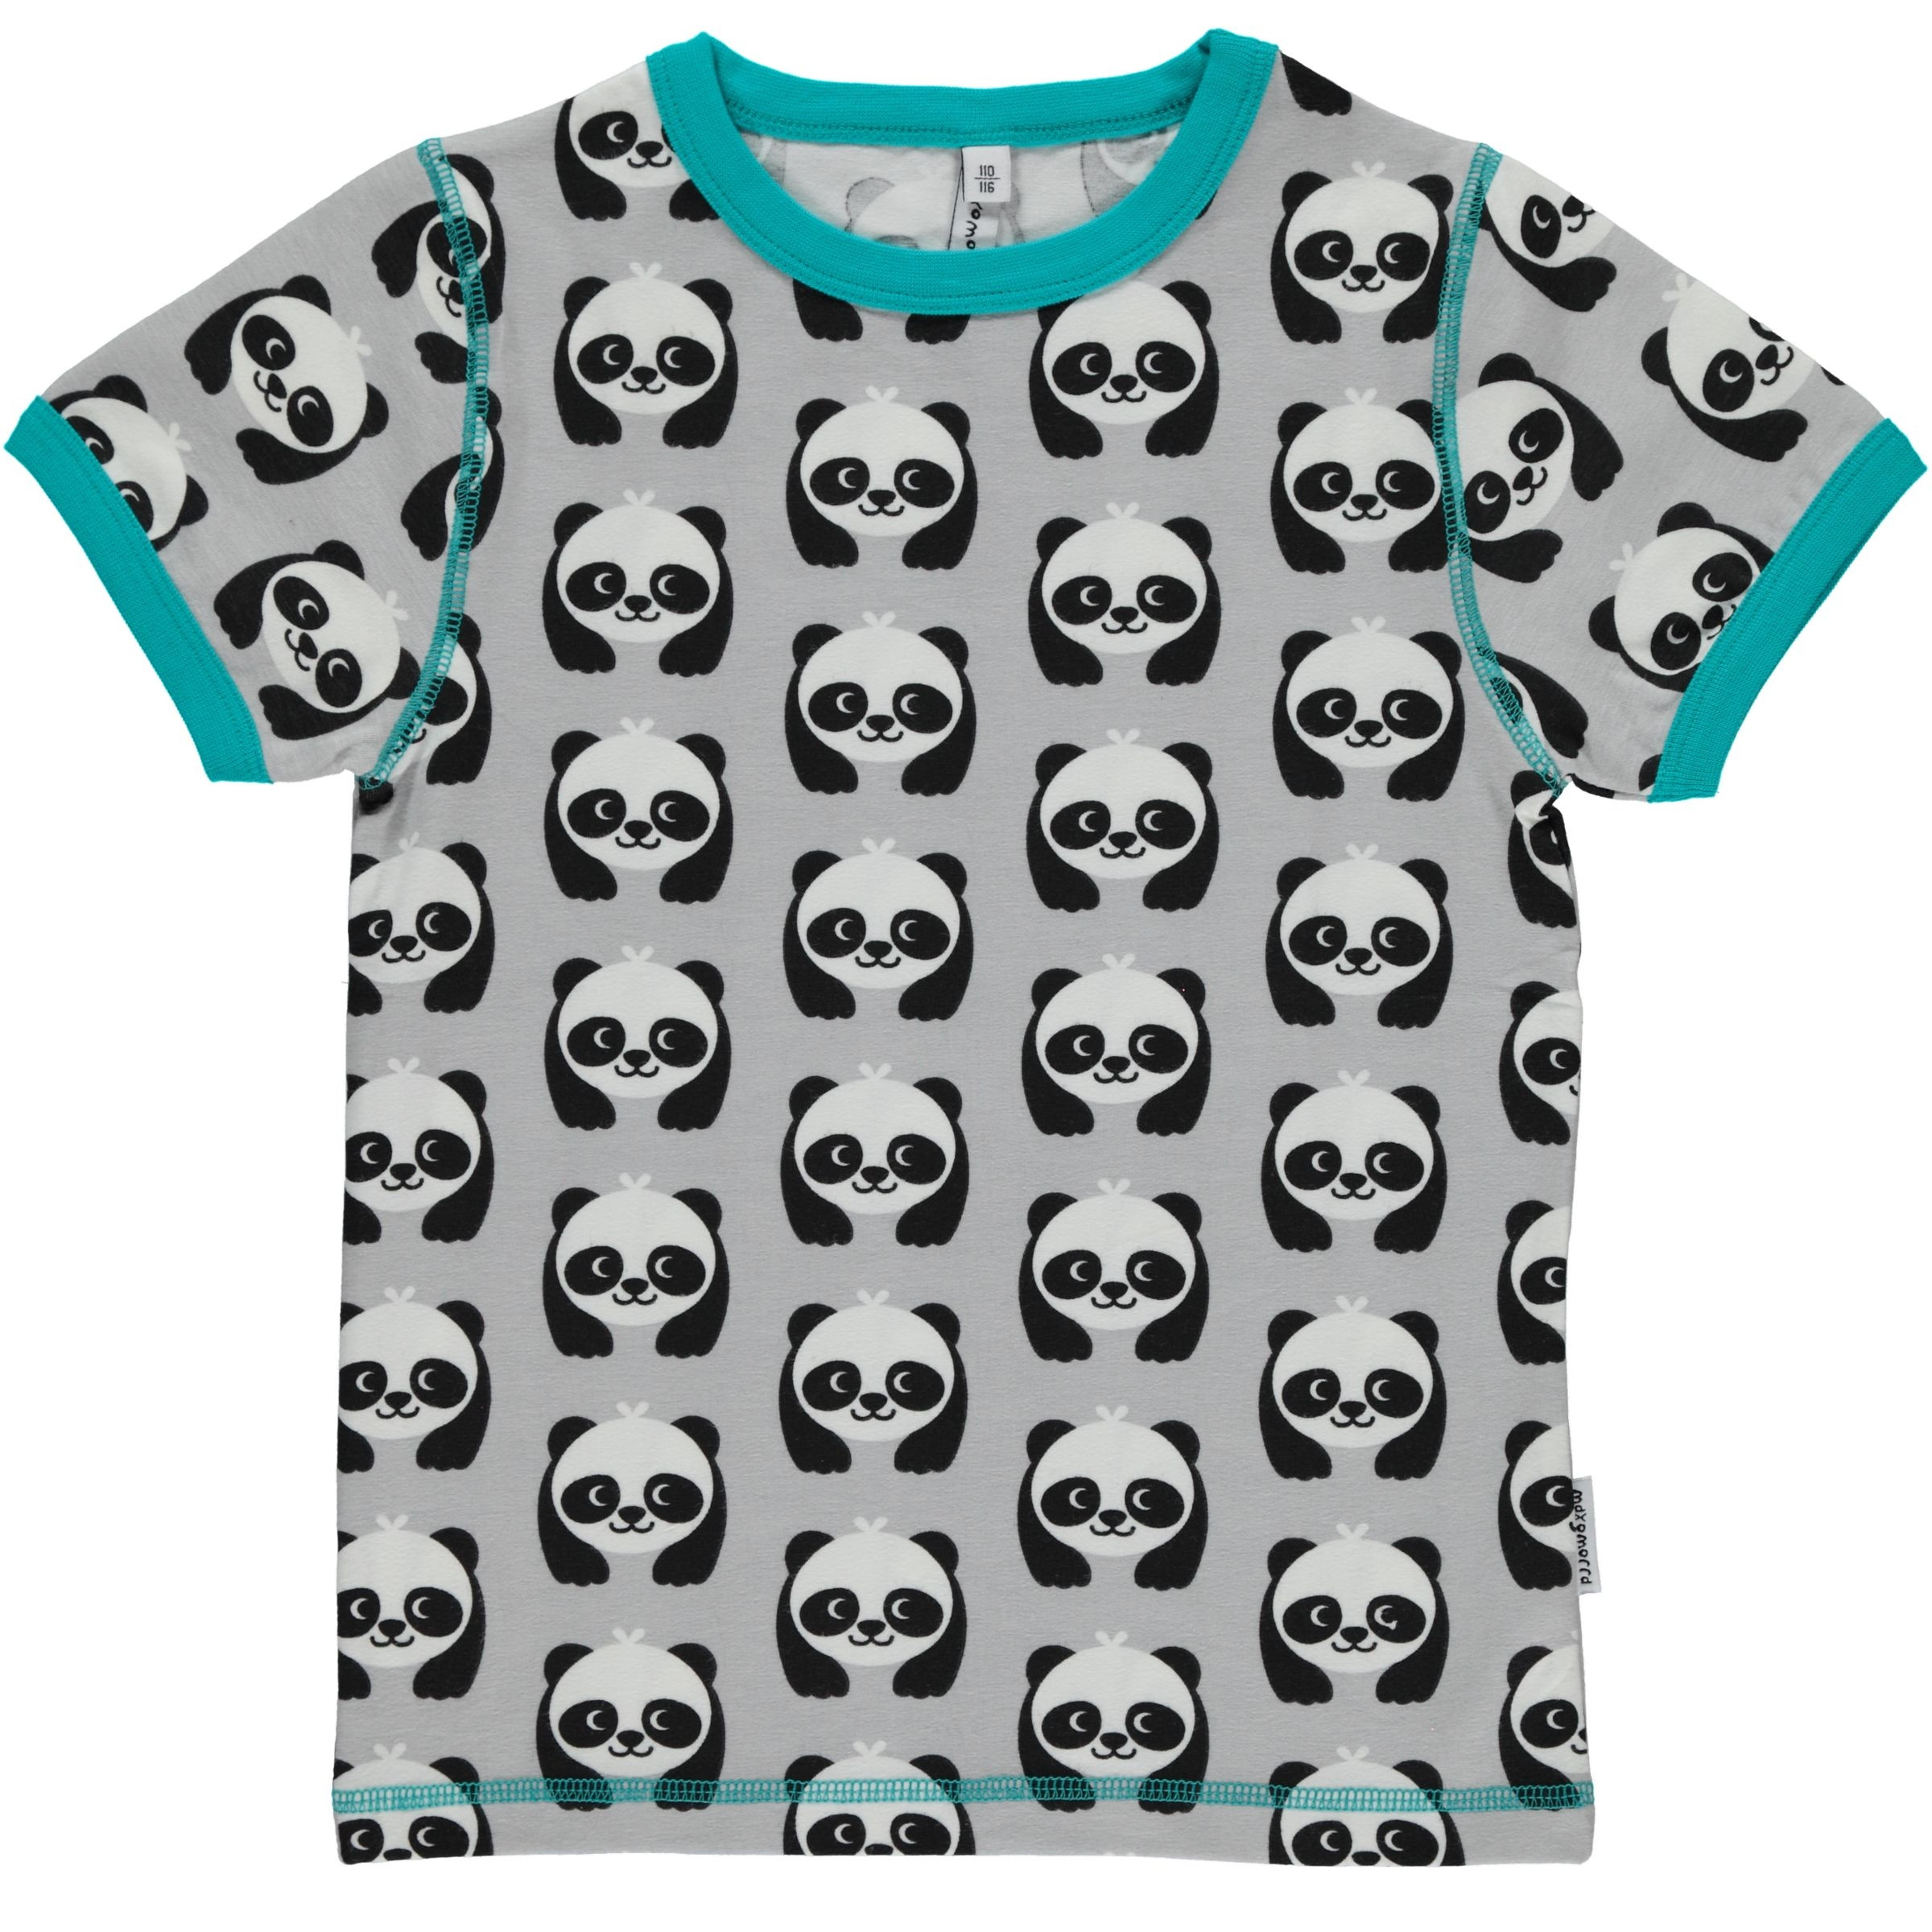 Maxomorra Panda T-Shirt Top